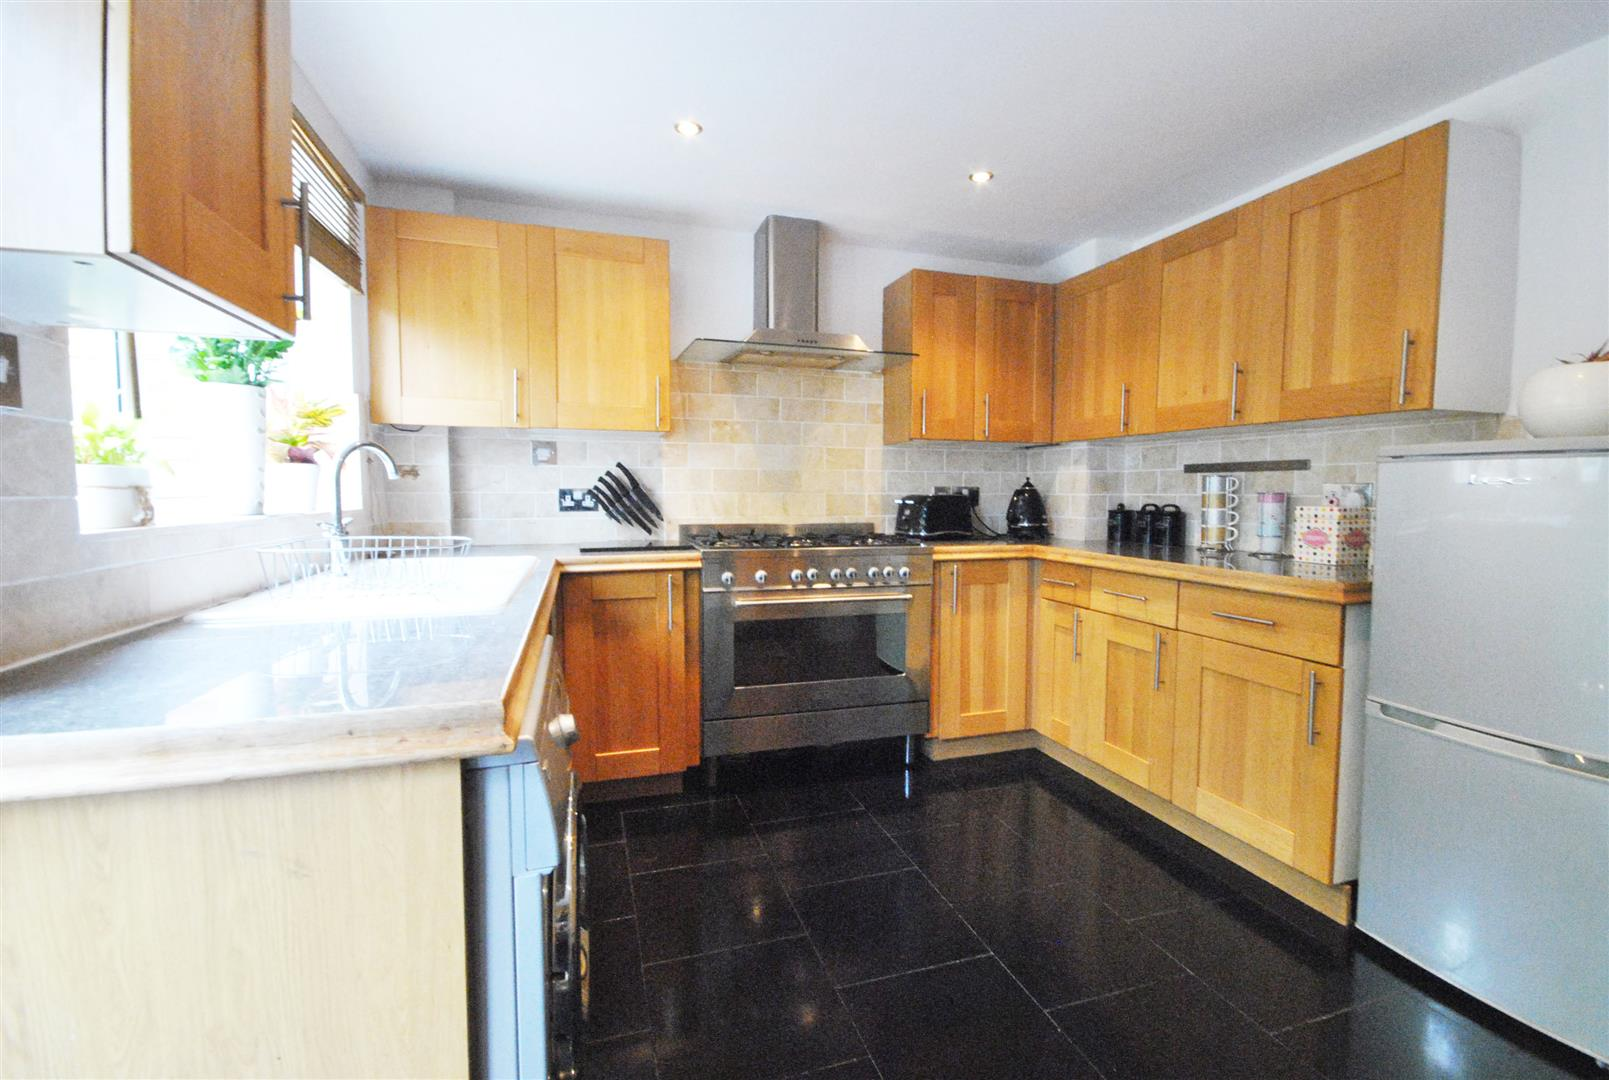 2 Bedrooms, House - Terraced